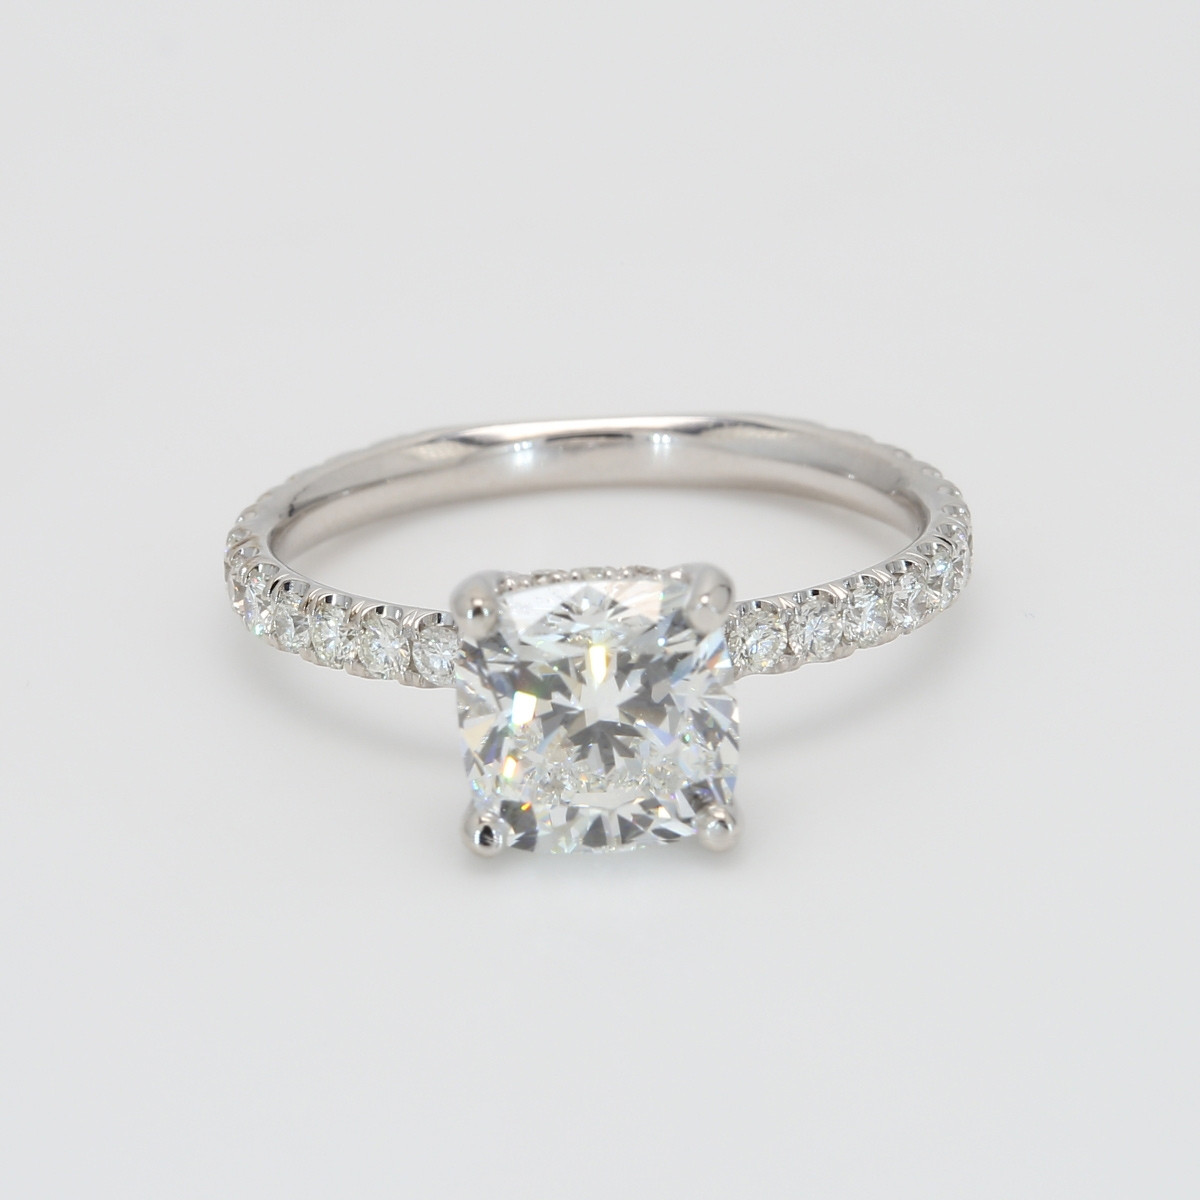 Custom Delicate Oliva Cushion Cut Engagement Ring